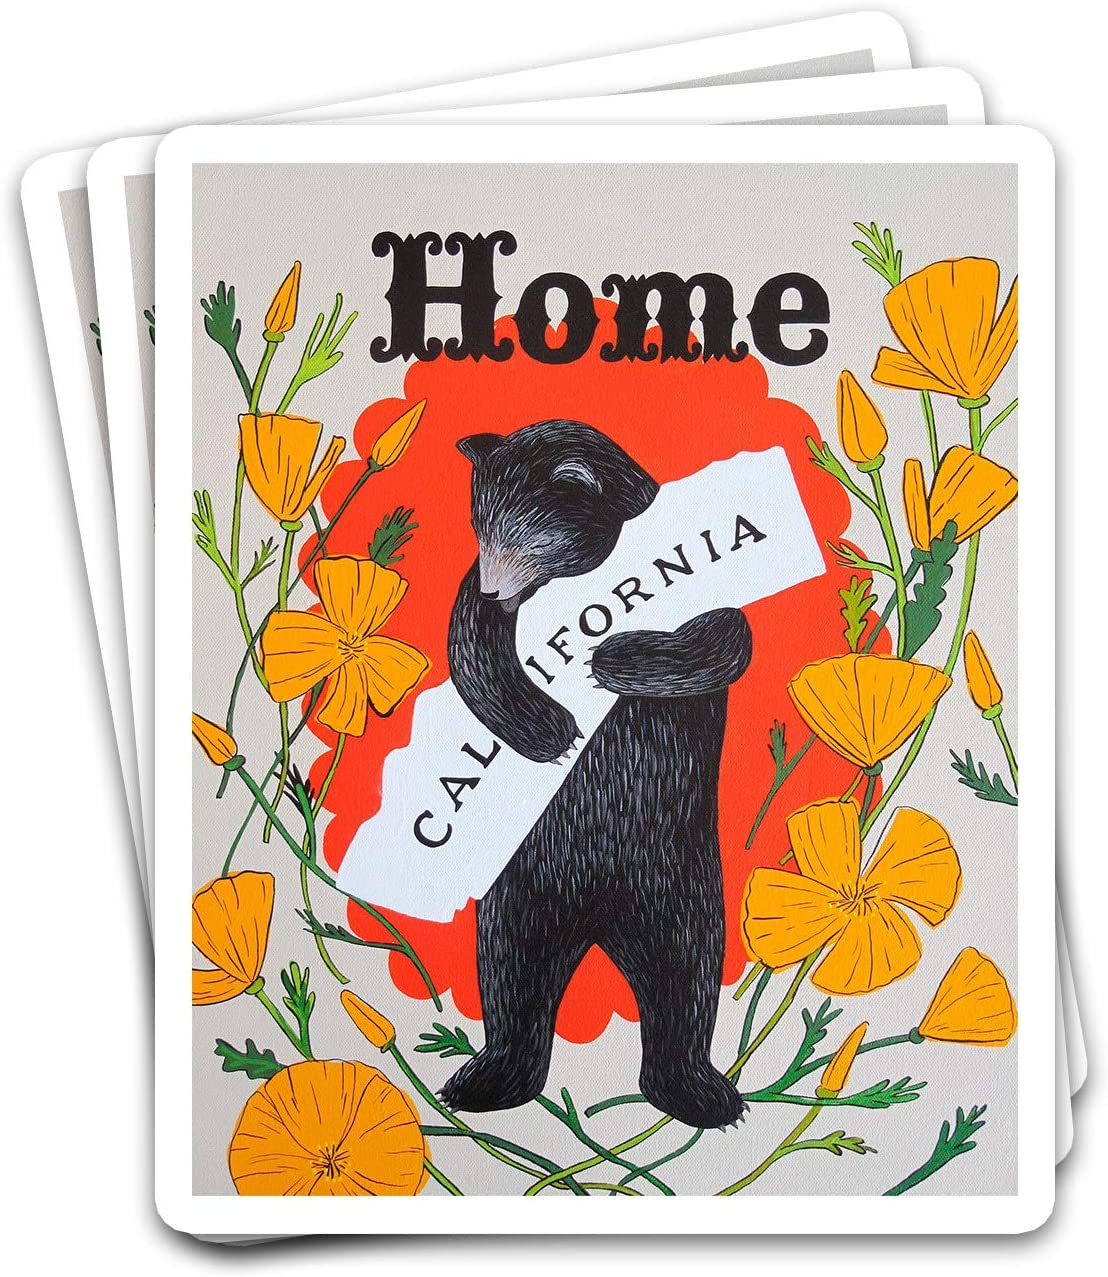 SNOWIX California US State Vintage Home Bear Hug Logo Name Sign Golden Poppies Ideas Stickers for Laptops Tumblers Books Luggages Cases Pack 3x4 in Vinyl 3pcs/Pack